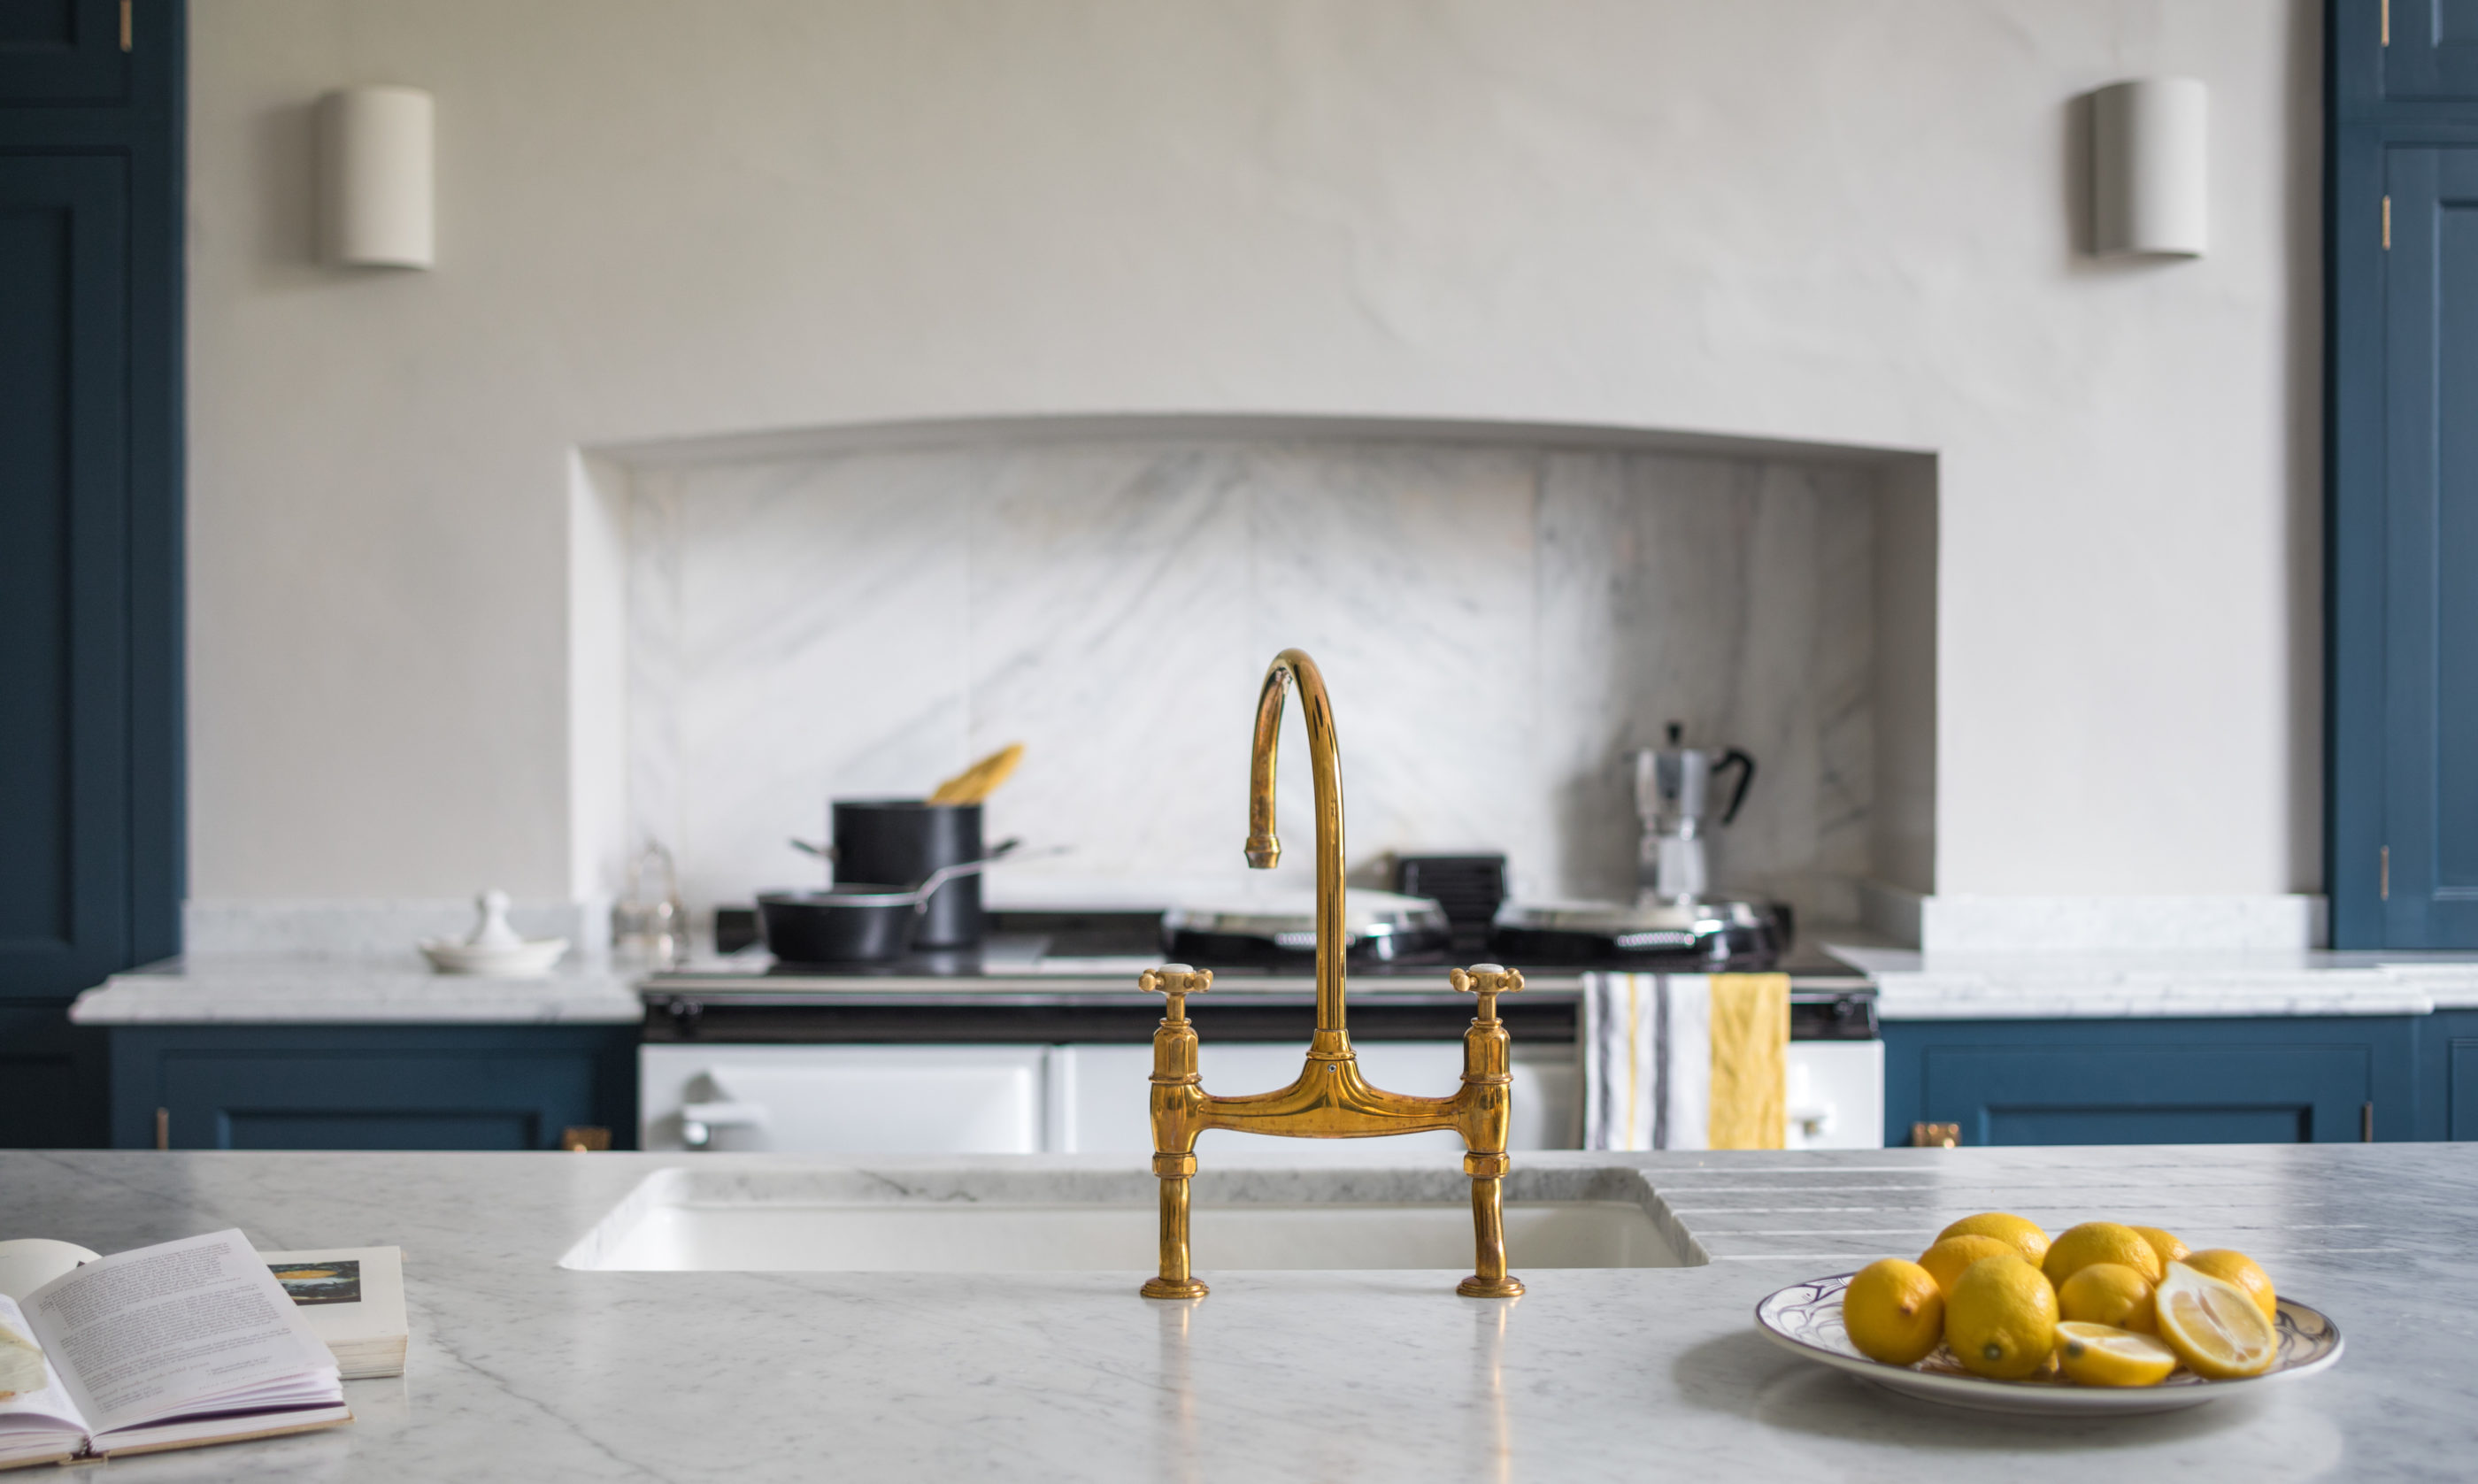 Guild Anderson Bespoke Kitchen and Furniture Design for Period Homes